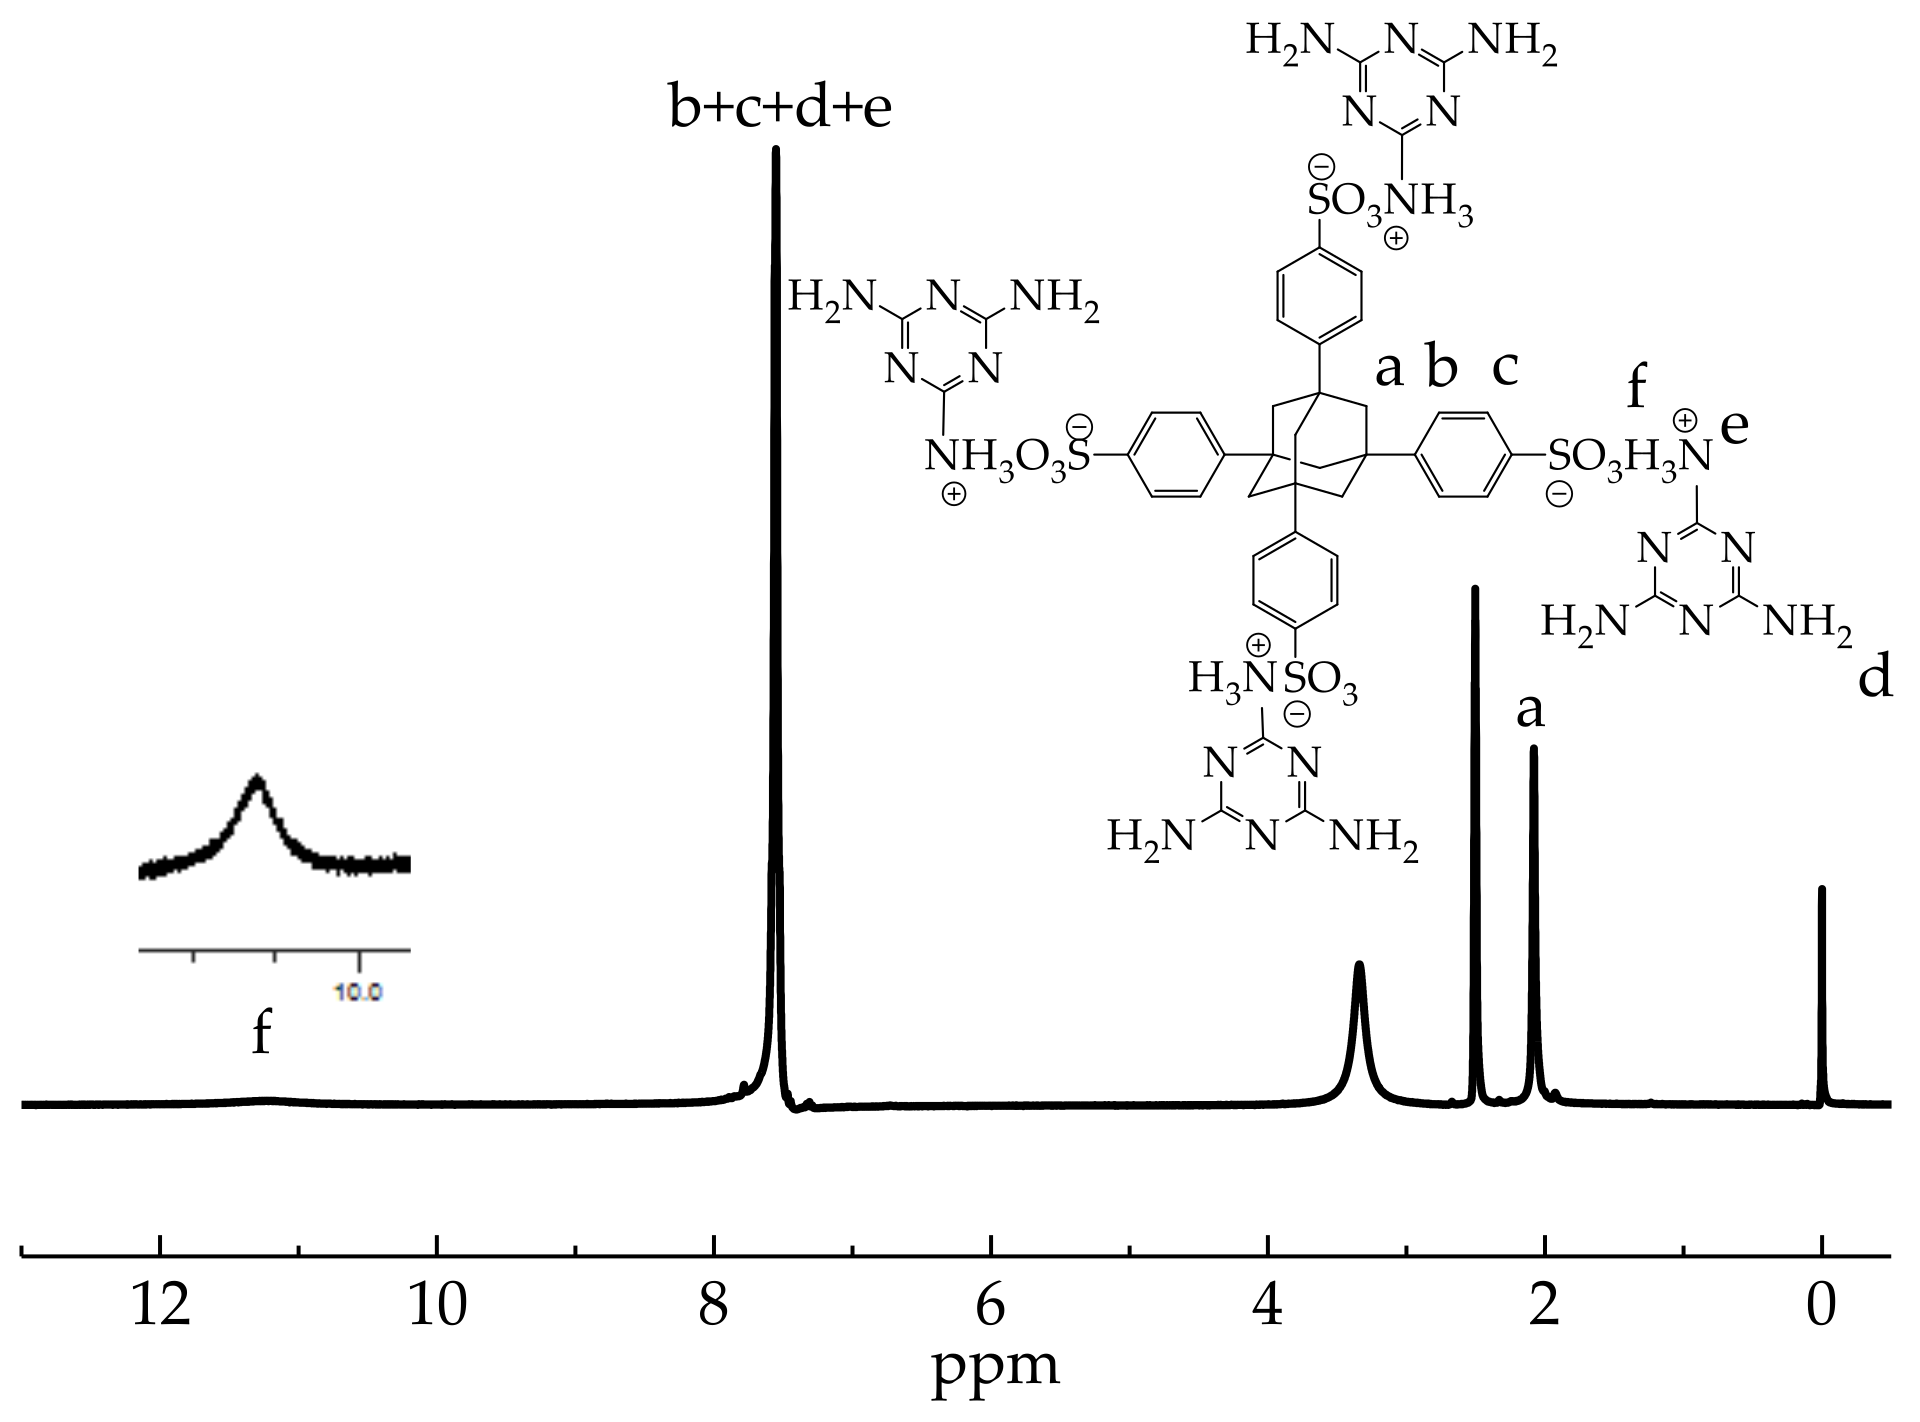 Polymers Free Full Text Synthesis Of An Efficient S N Based Diagram 18 19 Midland 805 10 00441 G002